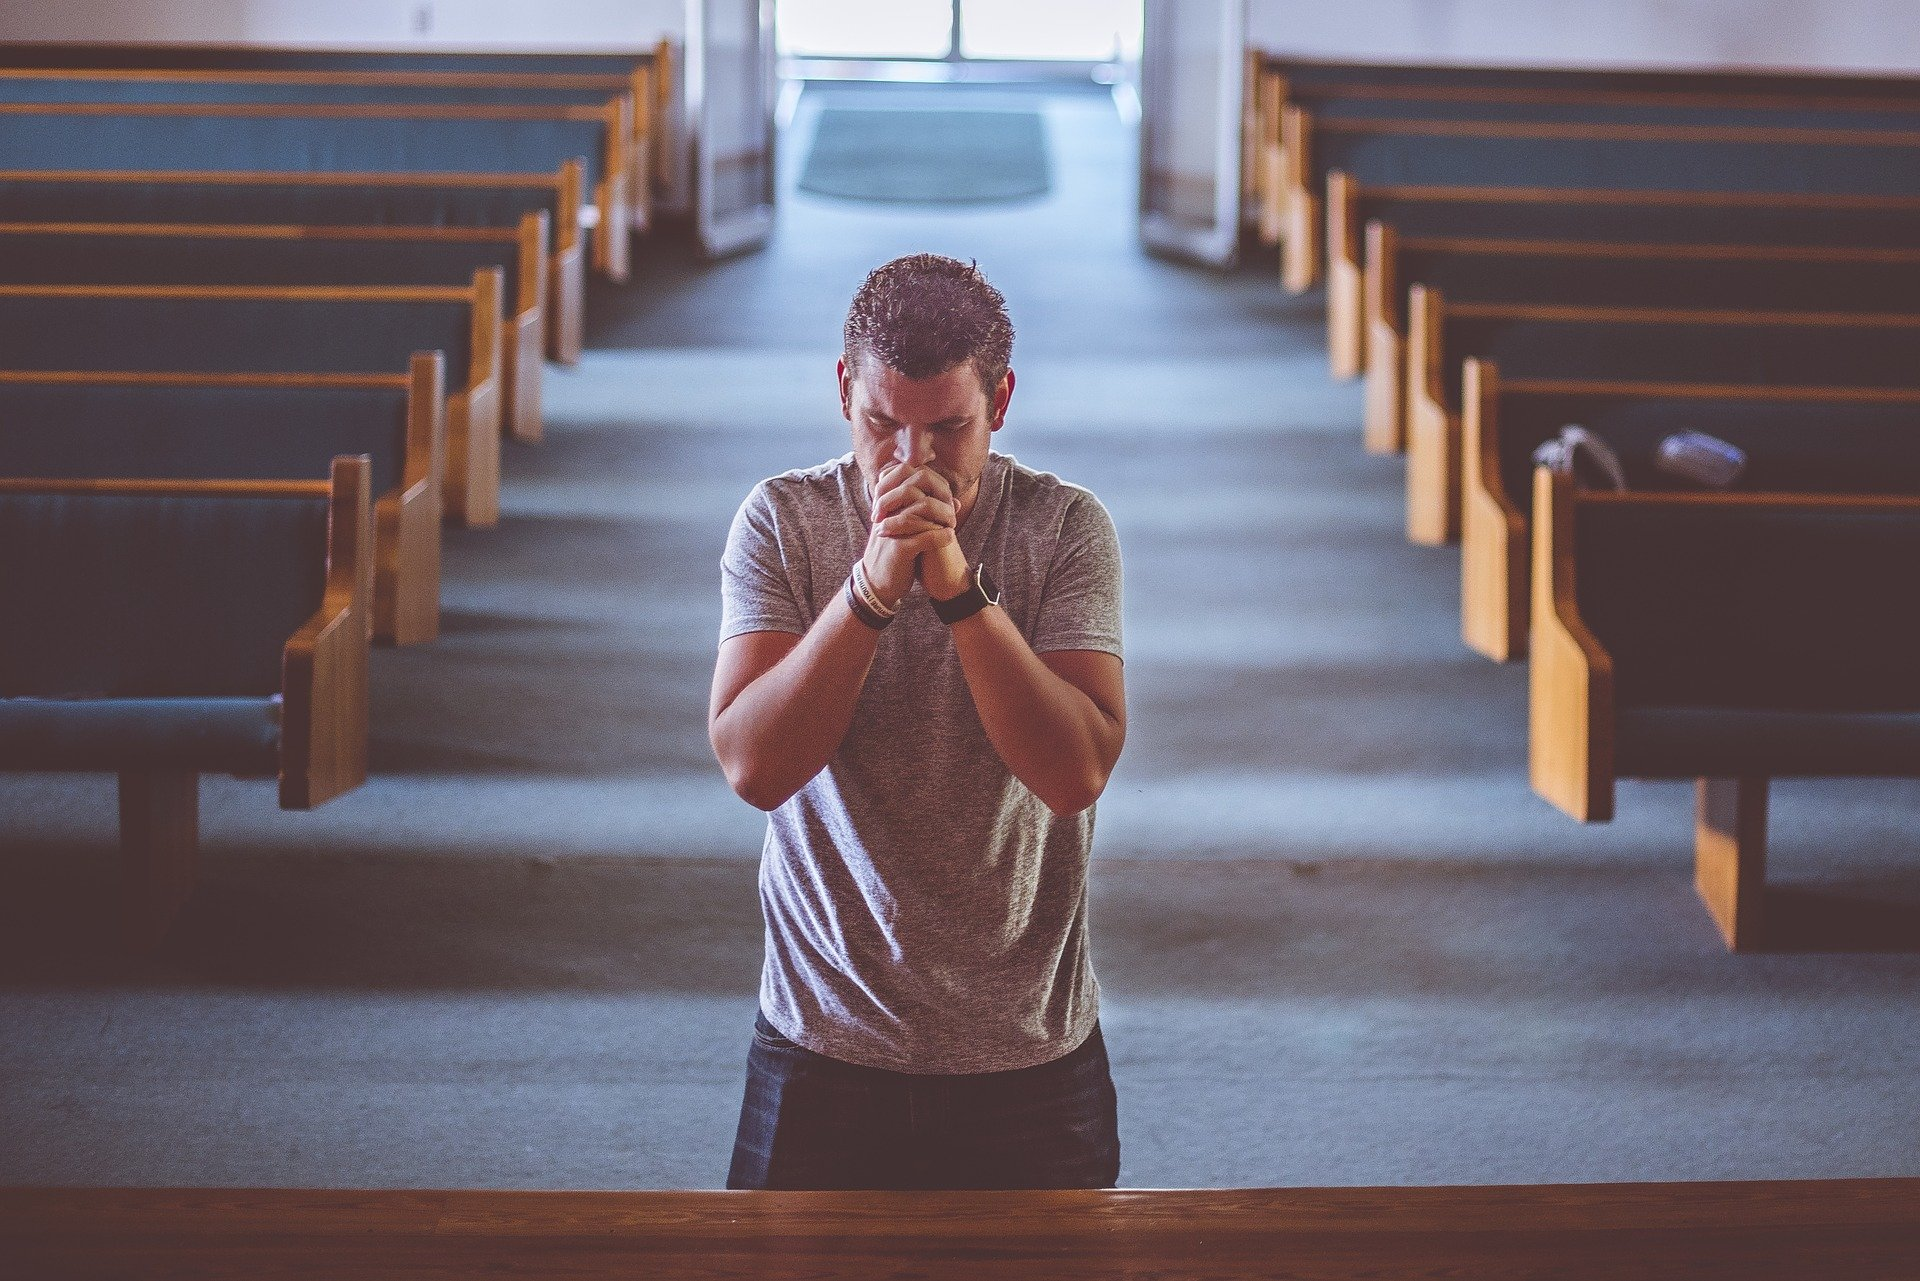 A Prayer vision image